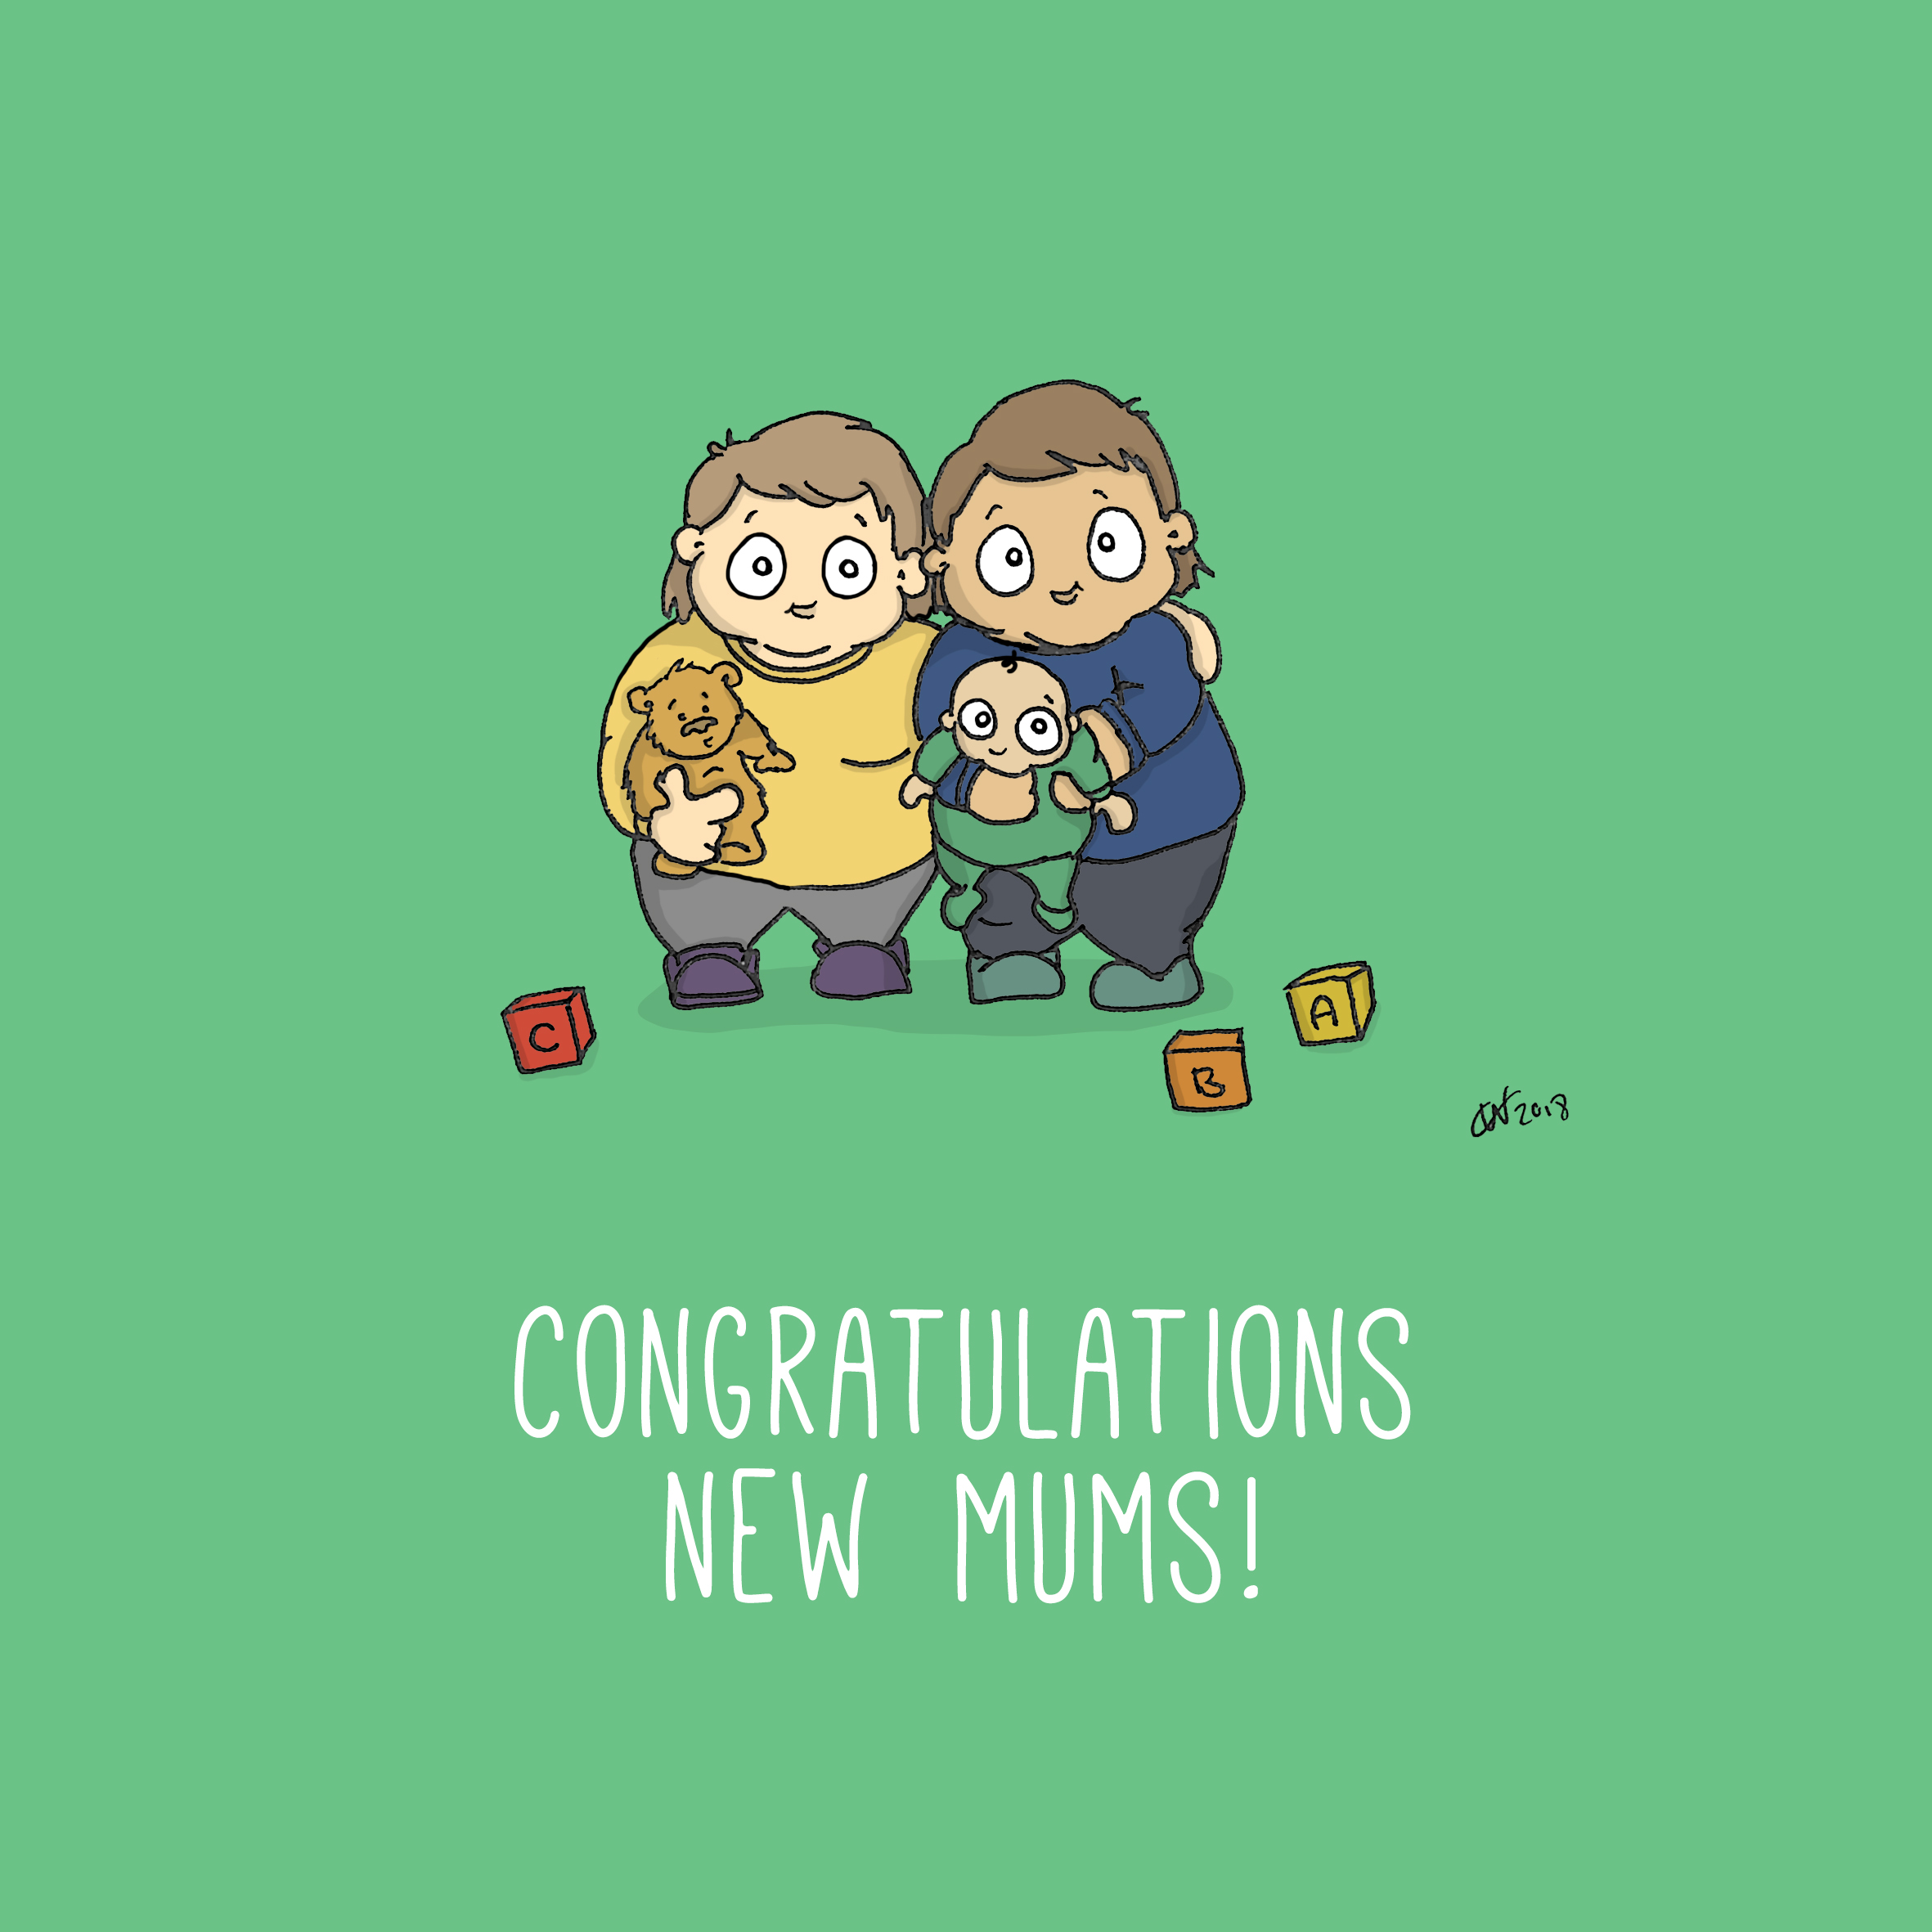 Two Mums New Mums Card